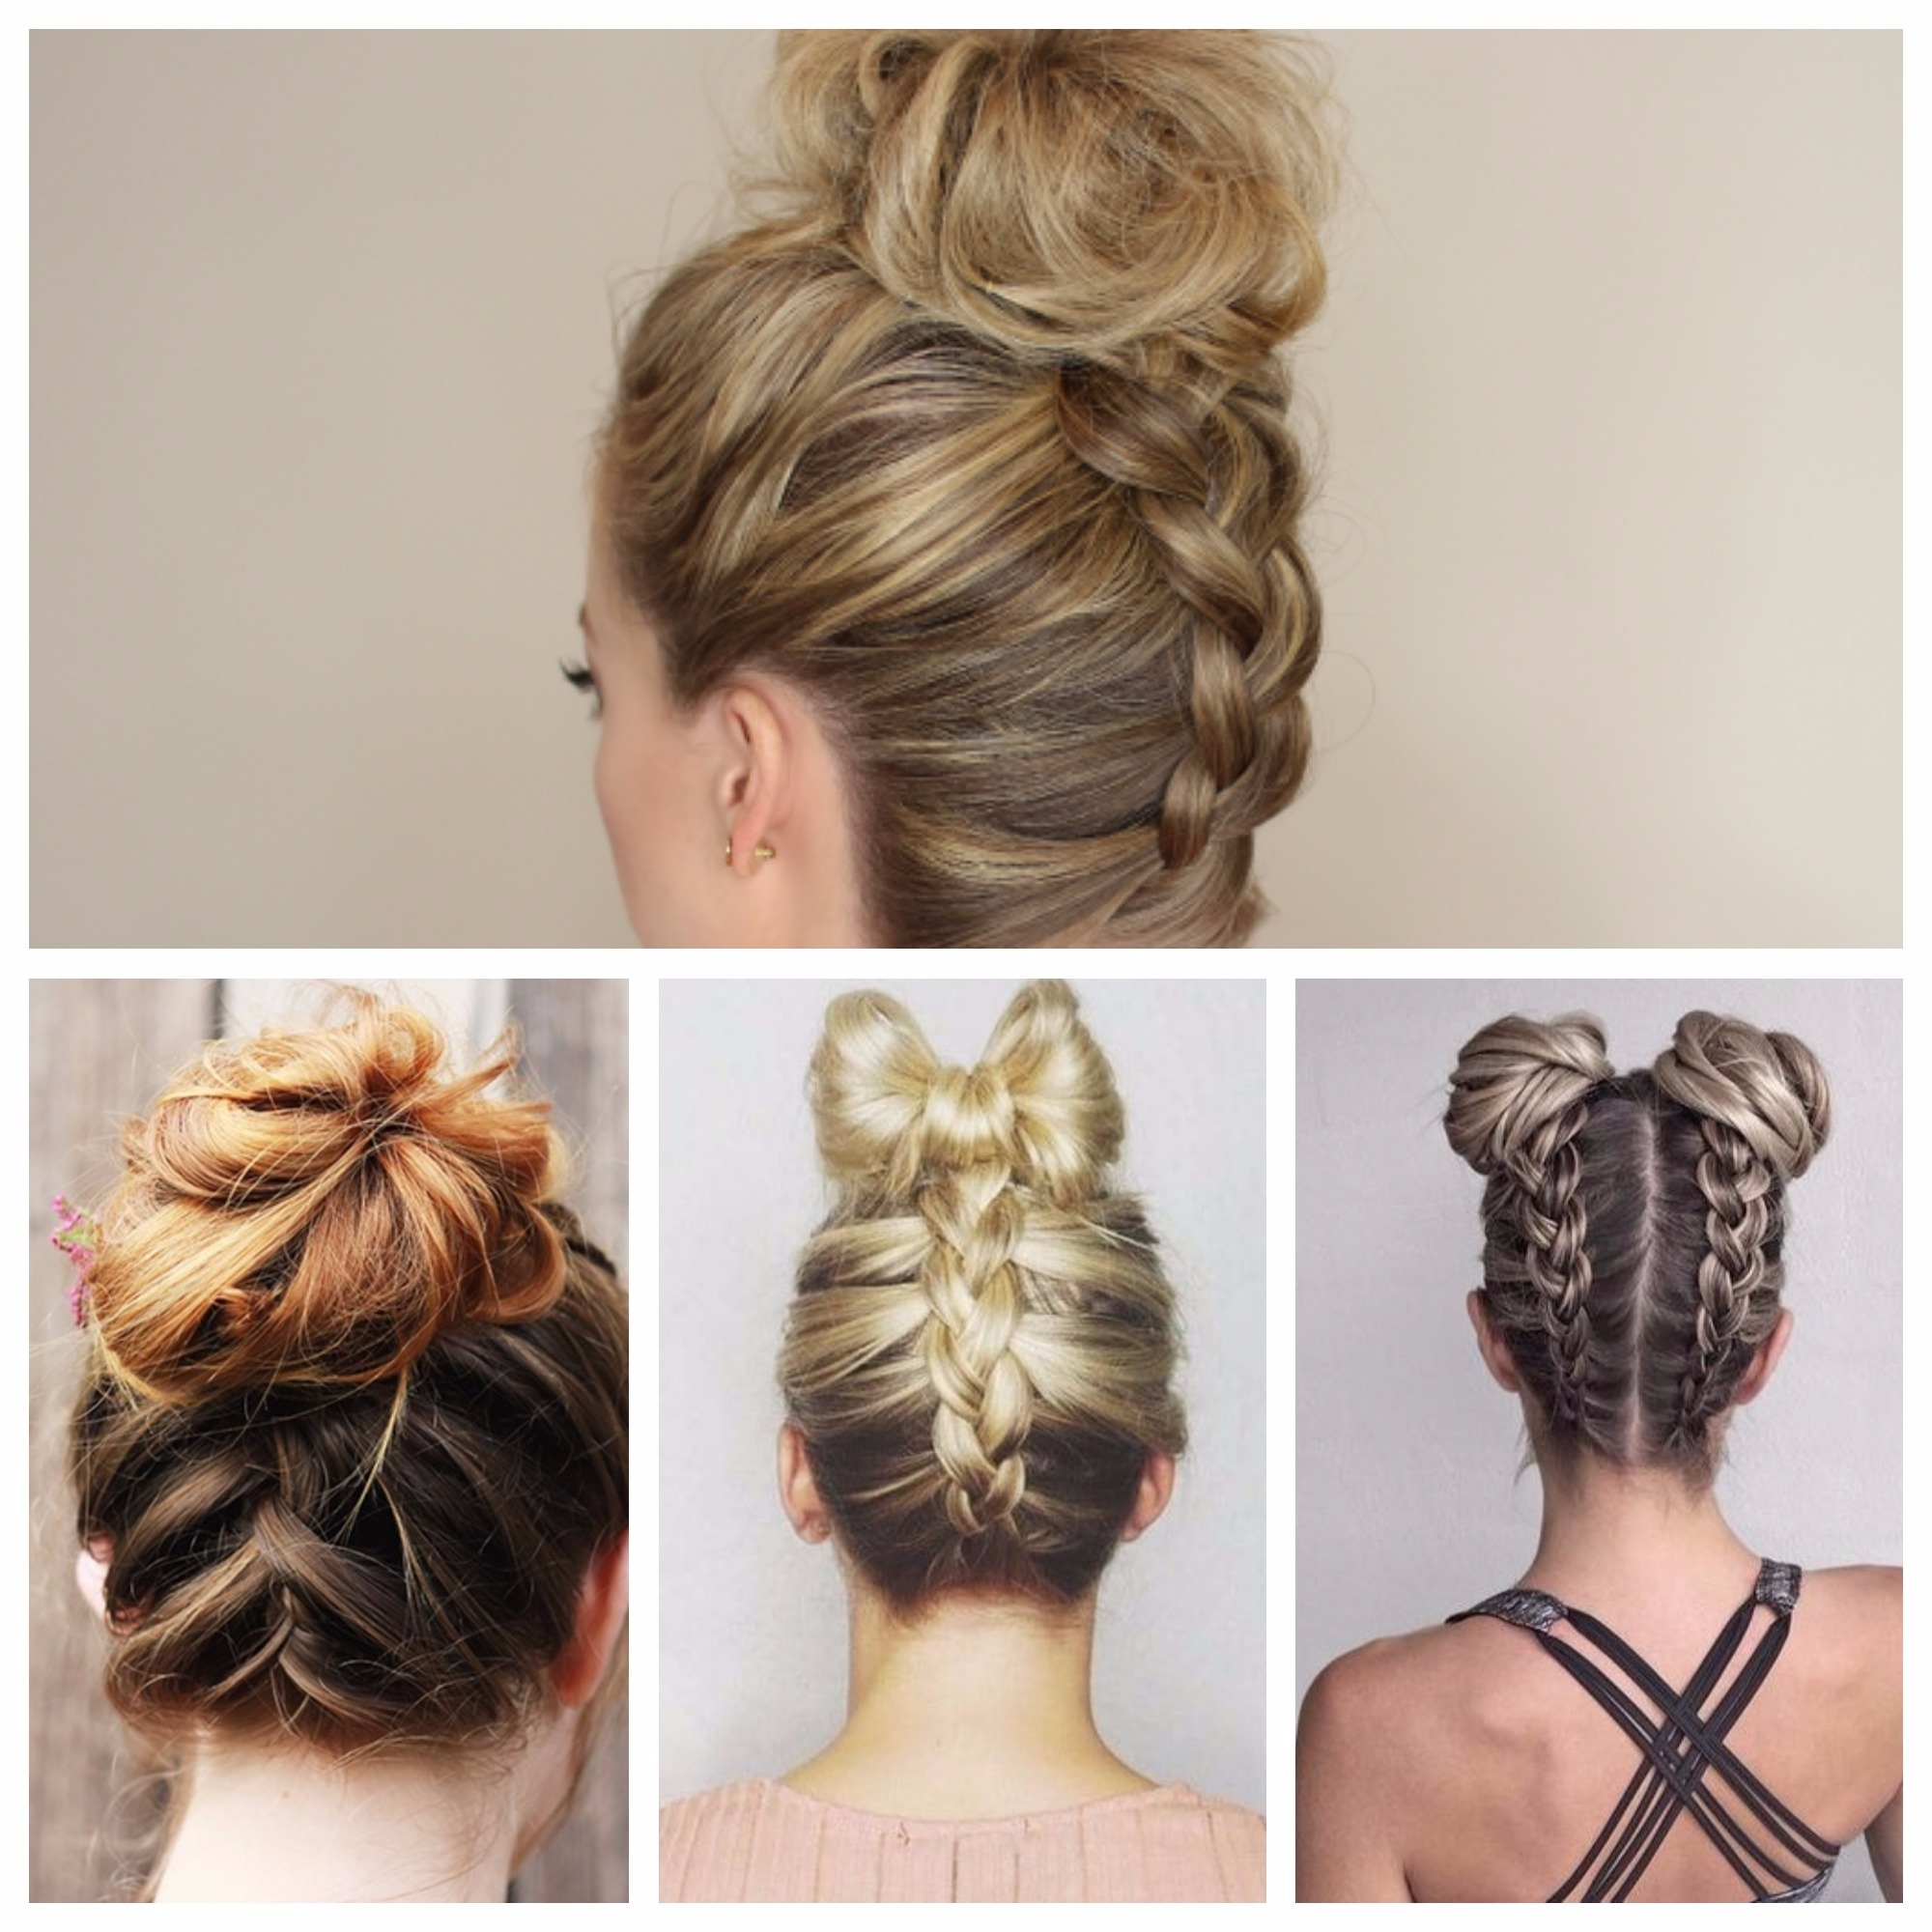 Upside Down French Braid Hairstyles For 2018 – New Hairstyles 2017 Regarding Famous Upside Down Braids Into Messy Bun (Gallery 14 of 15)